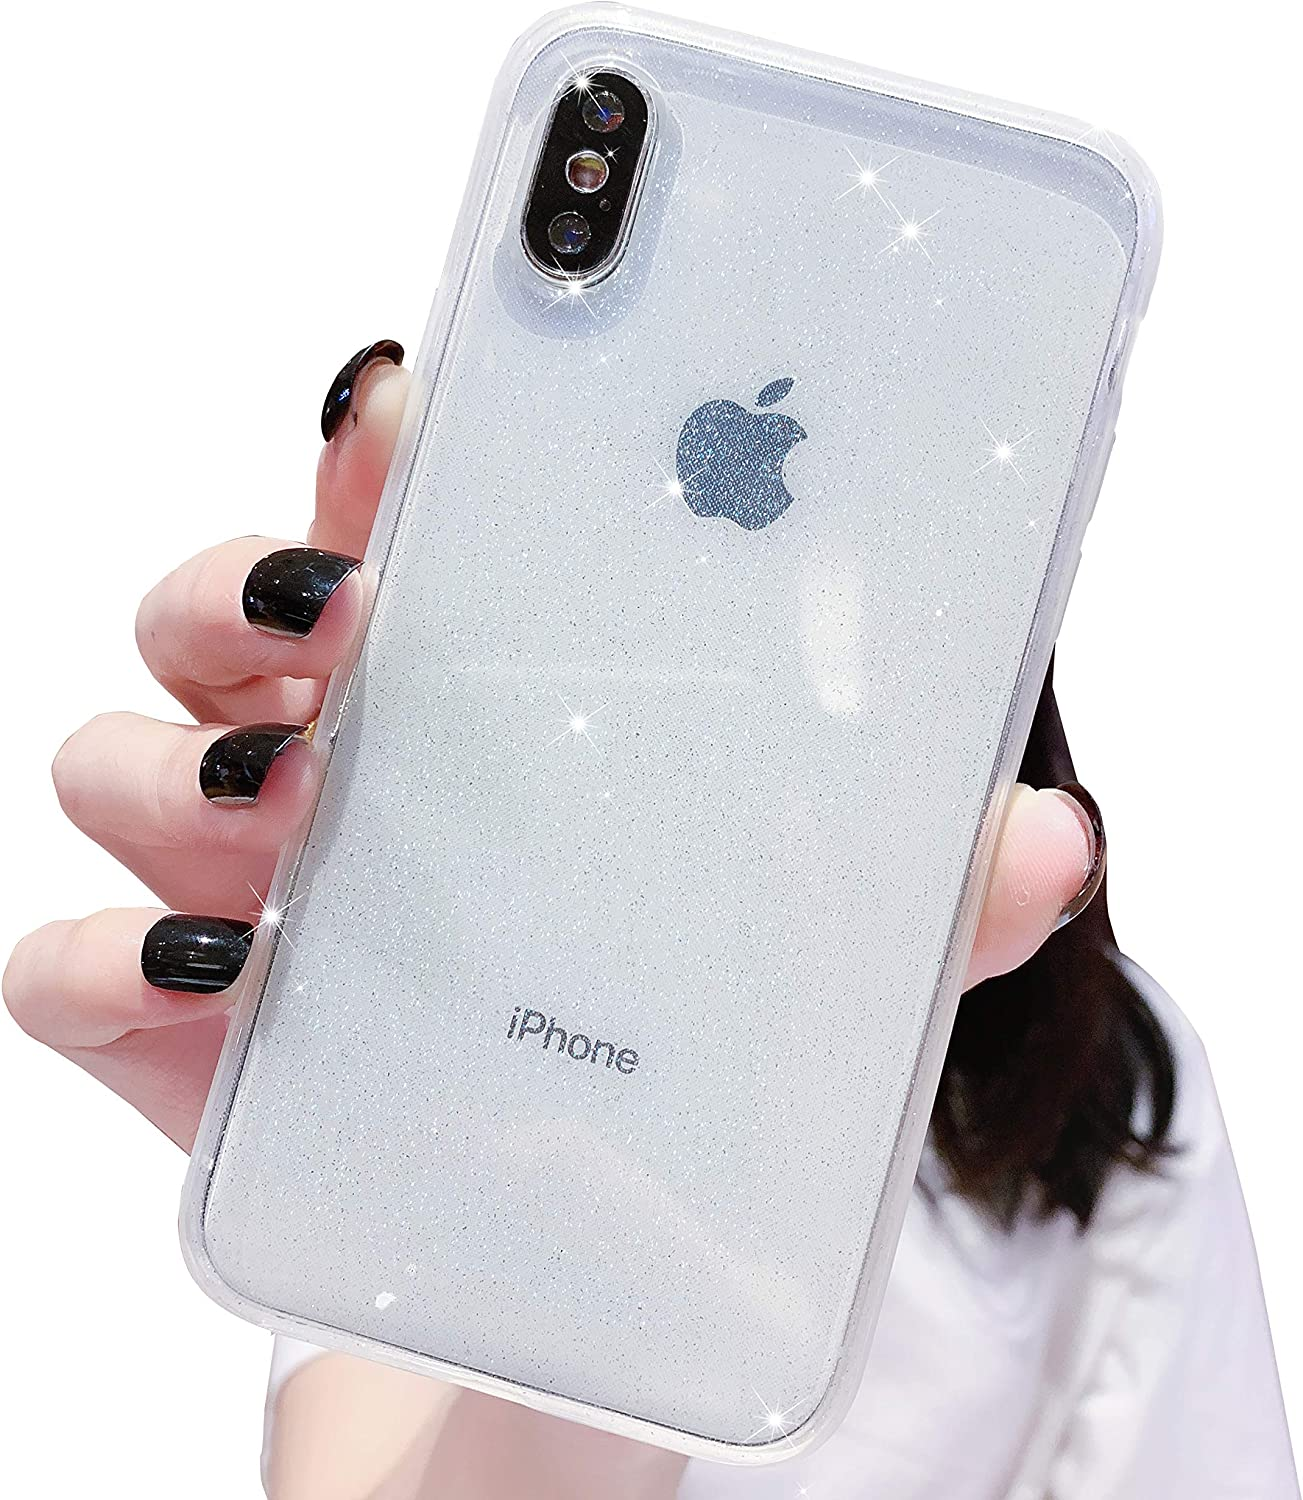 Anynve iPhone X/XS Case, Clear Glitter Bling Sparkle Case [ Anti-Shock Matte Edge Bumper Design] Cute Slim Soft Silicone Gel Case Compatible for Apple iPhone X/Xs 5.8''-Clear